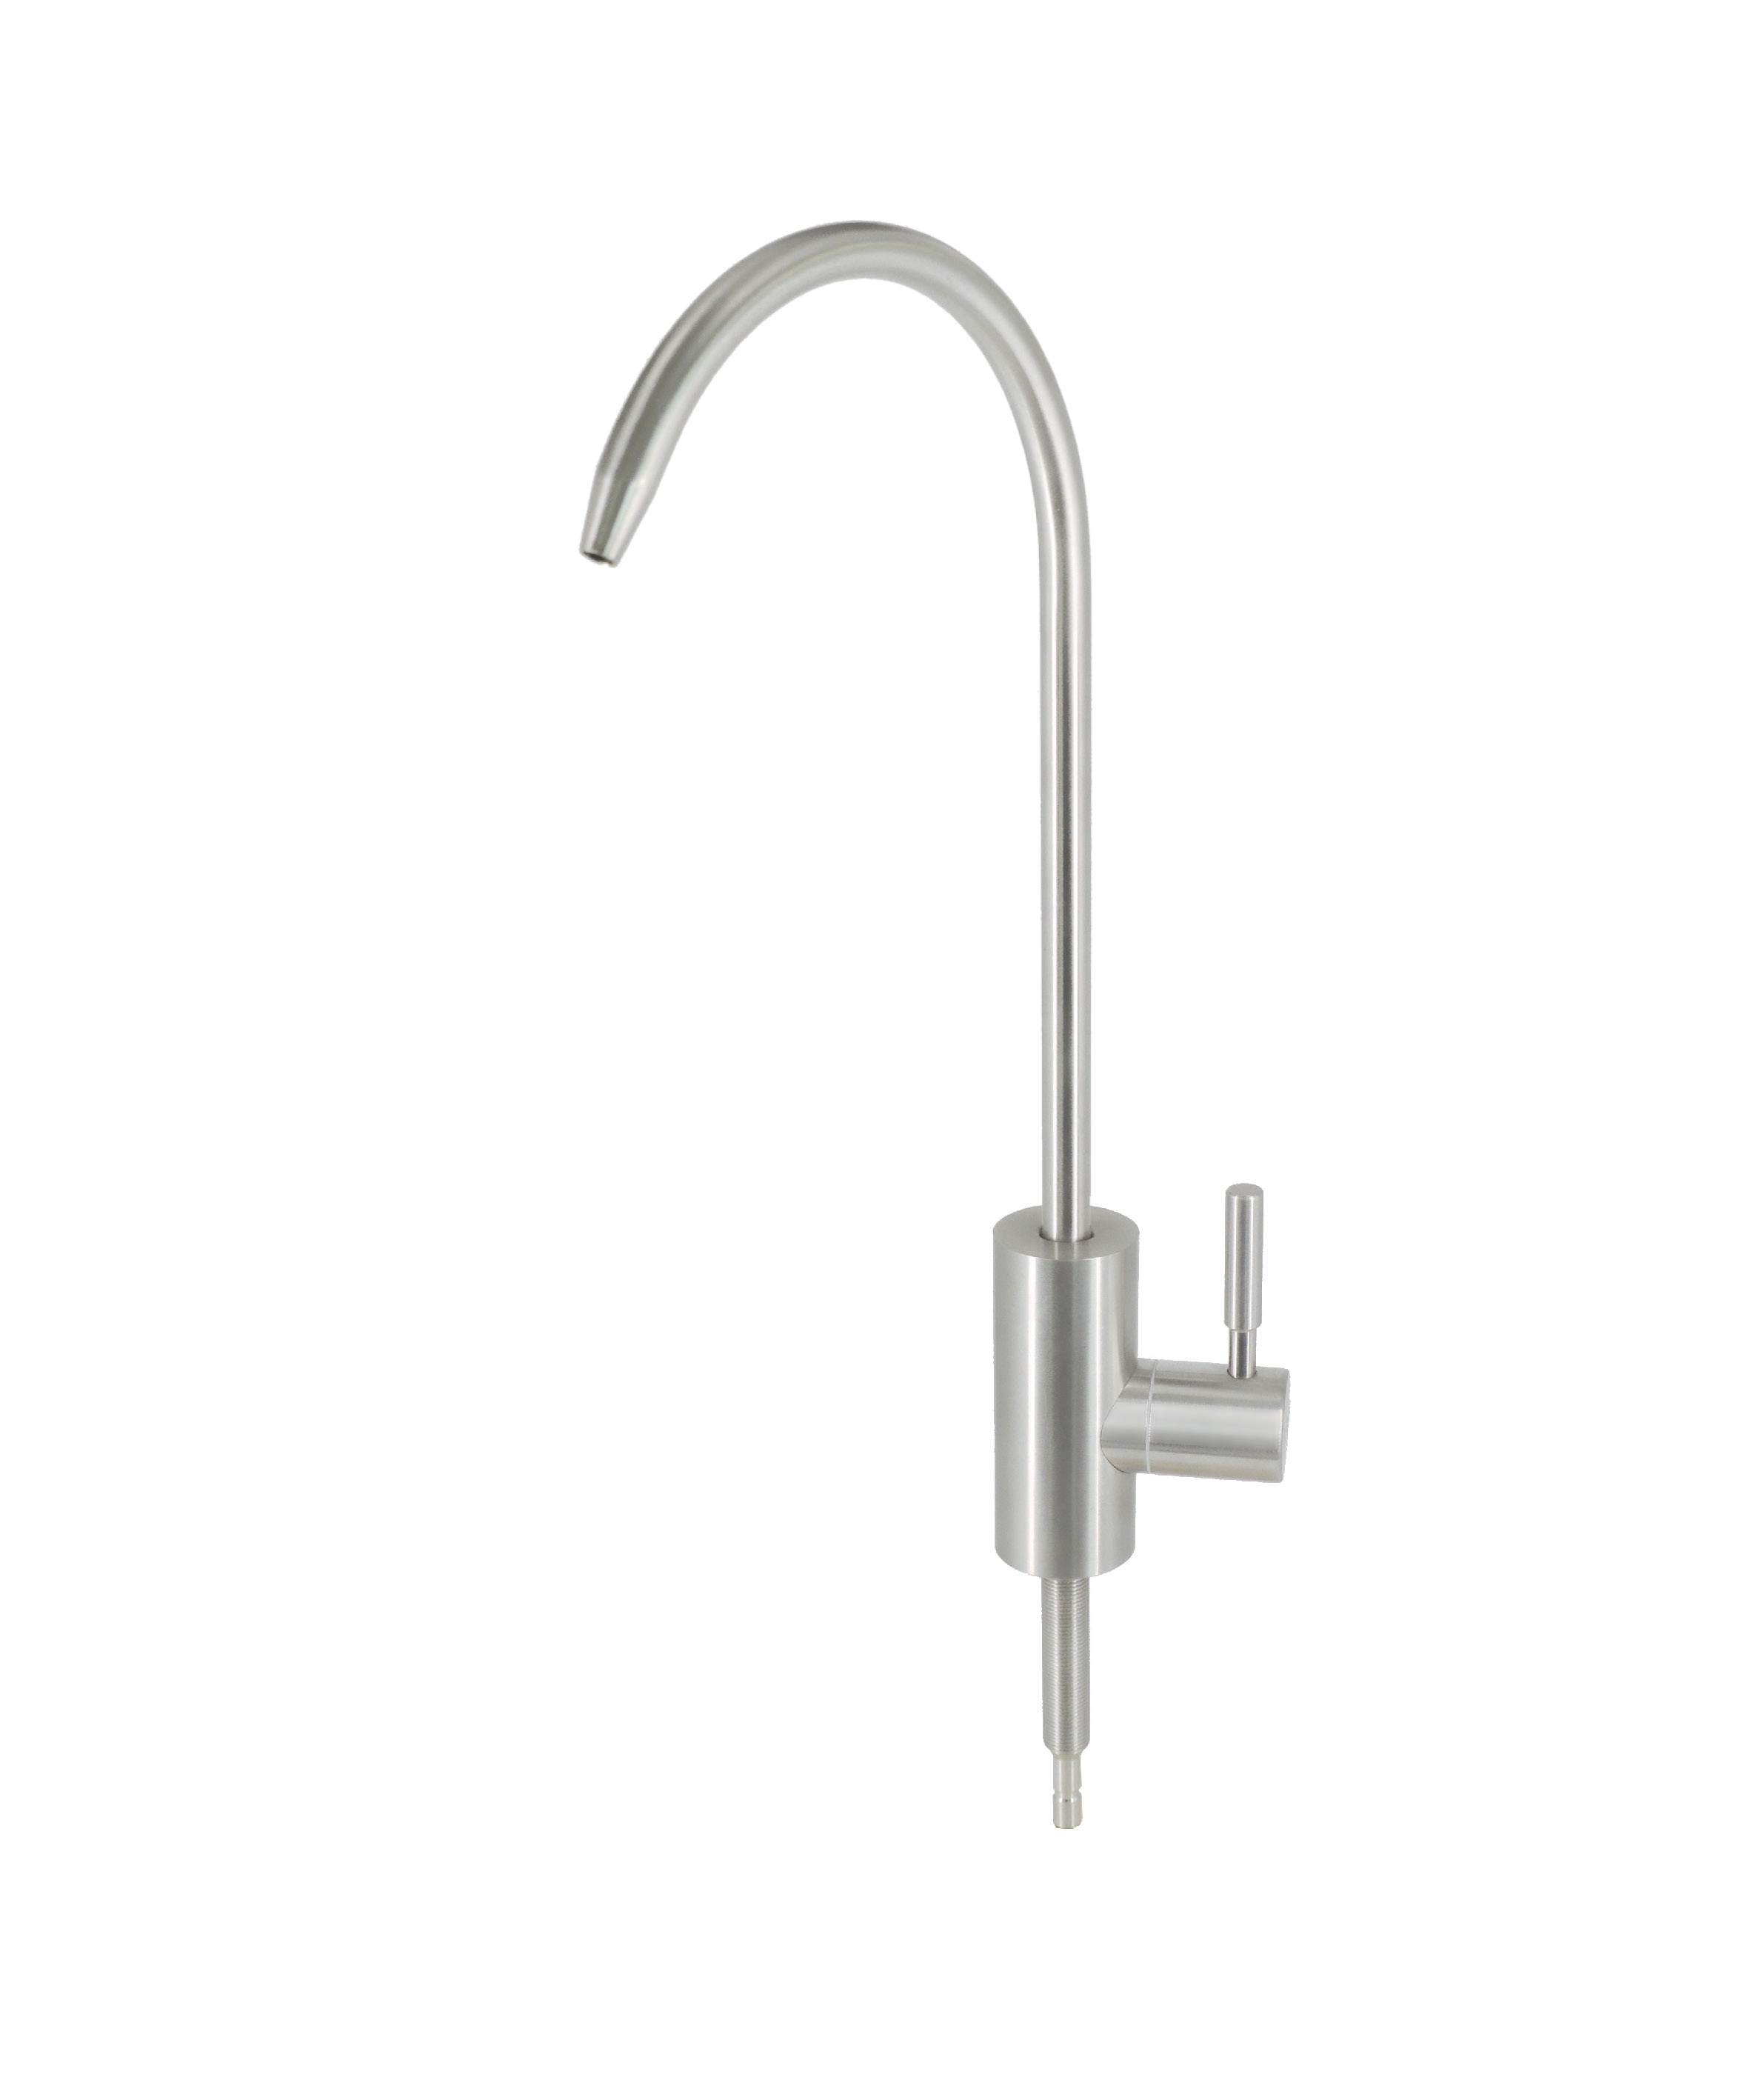 Stainless Steel NSF CE ROHS Drinking Water Faucet for any RO Units or Water Filtration System, Kitchen/Sink Water Filter Faucet,